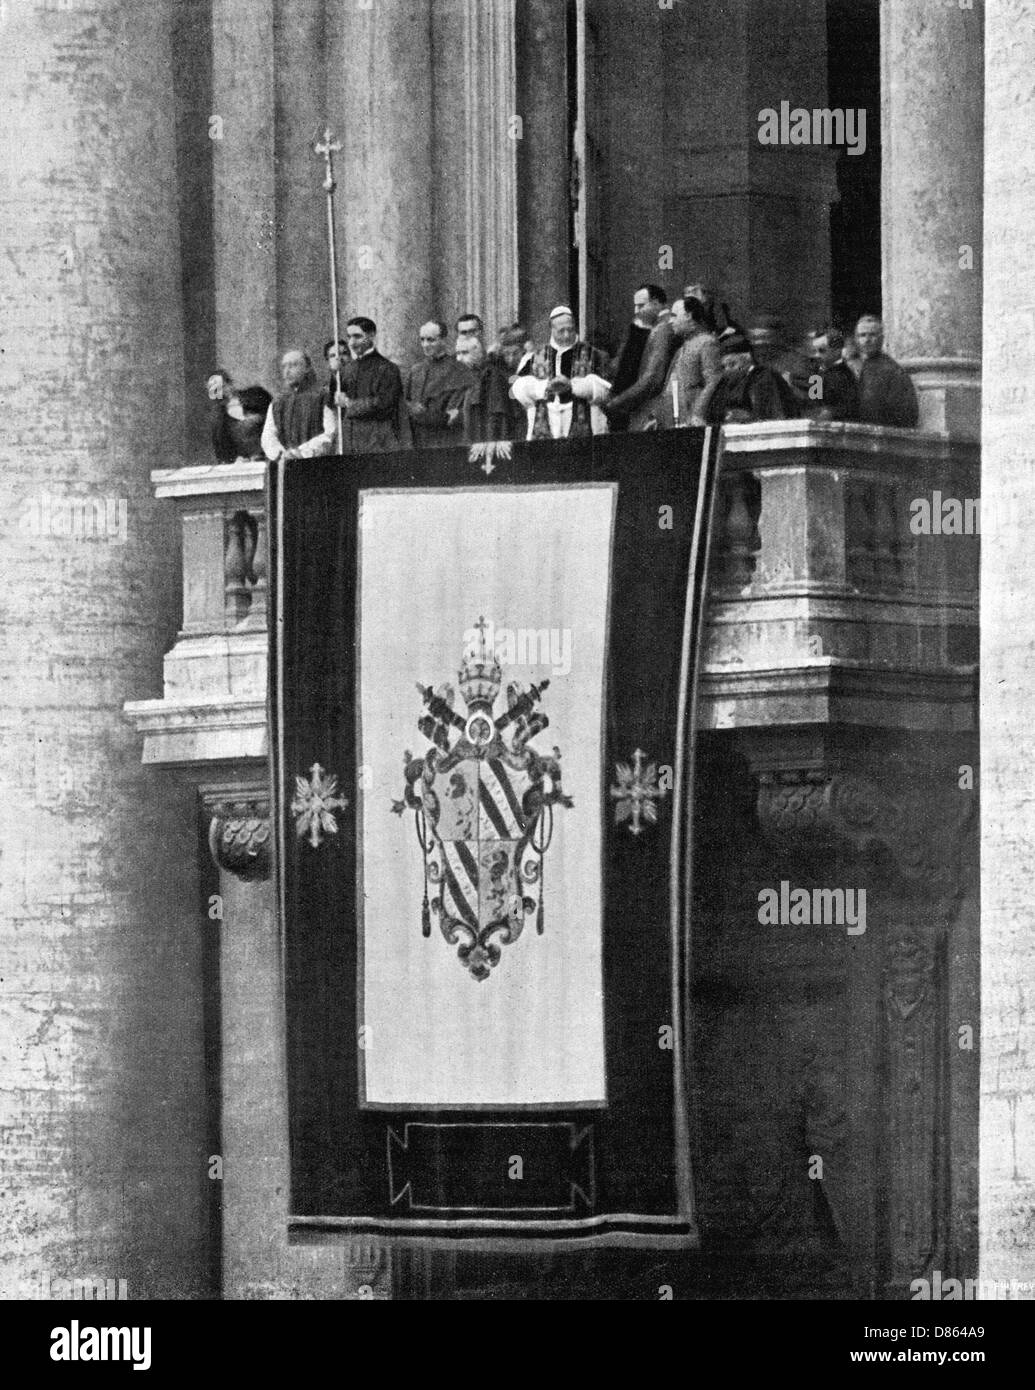 A Papal Address By Pope Pius Xi - Stock Image